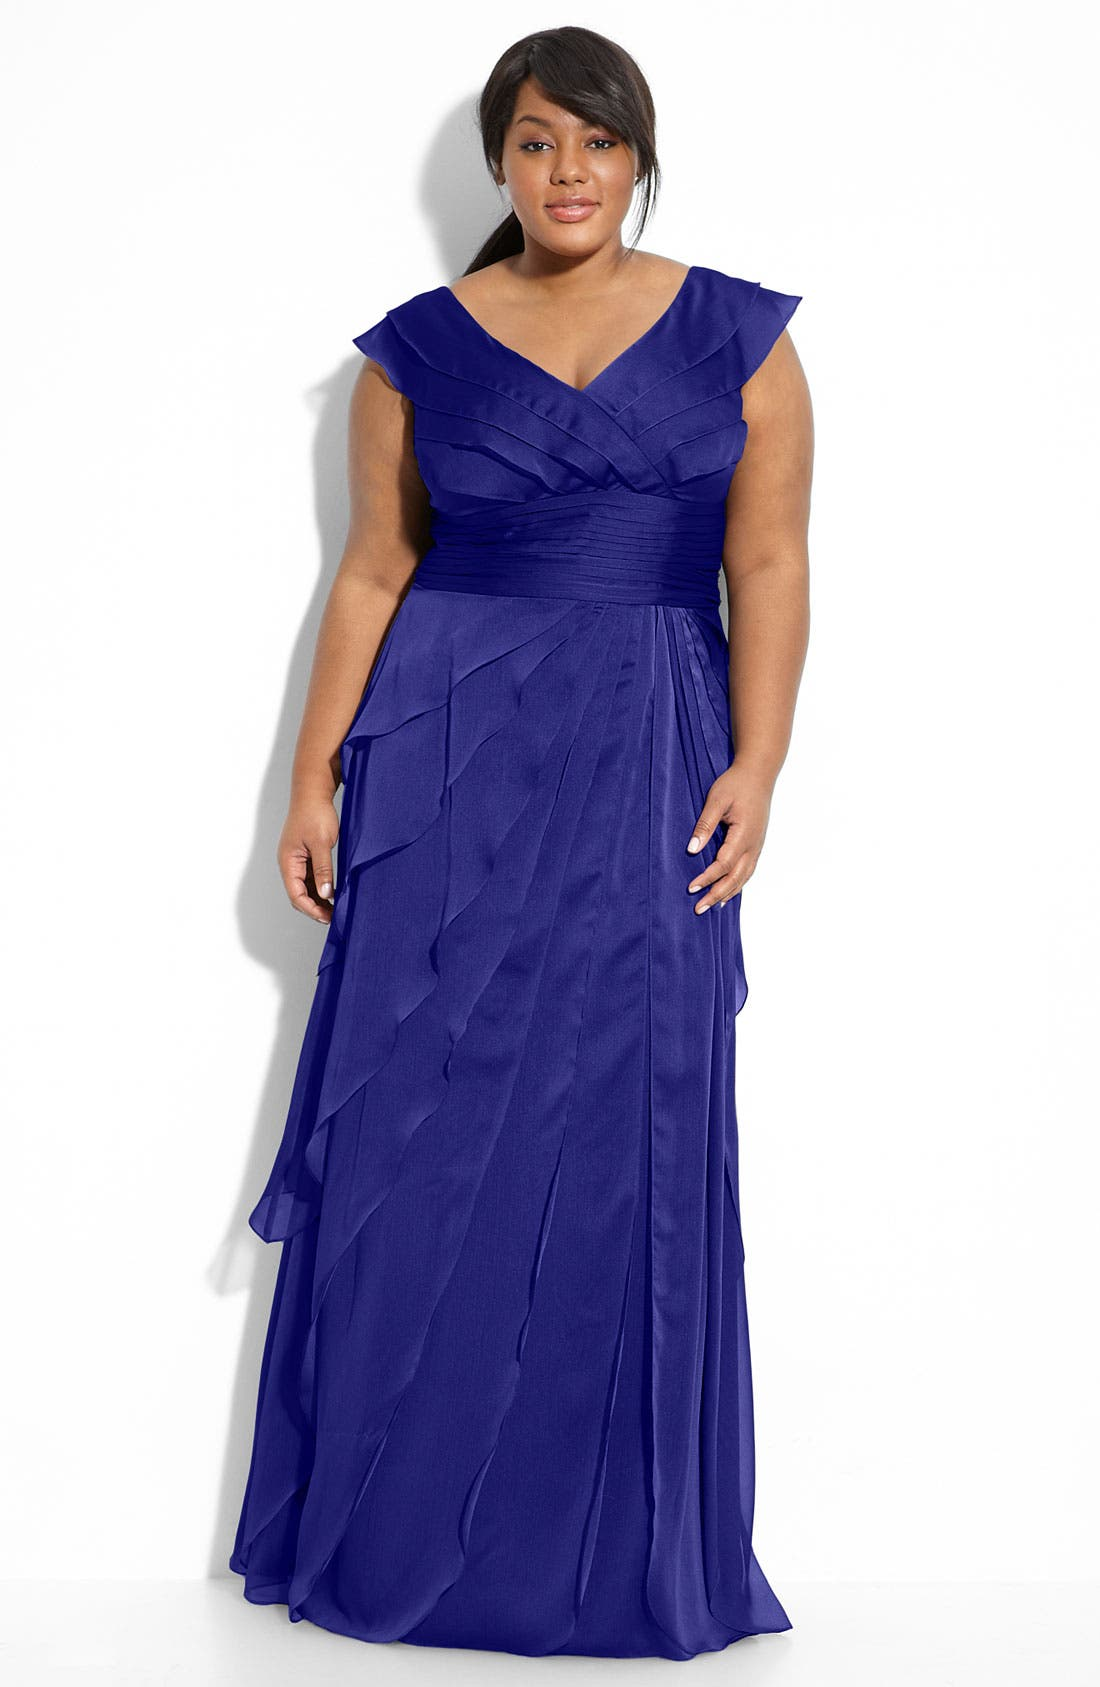 Main Image - Adrianna Papell Iridescent Chiffon Petal Gown (Plus Size)